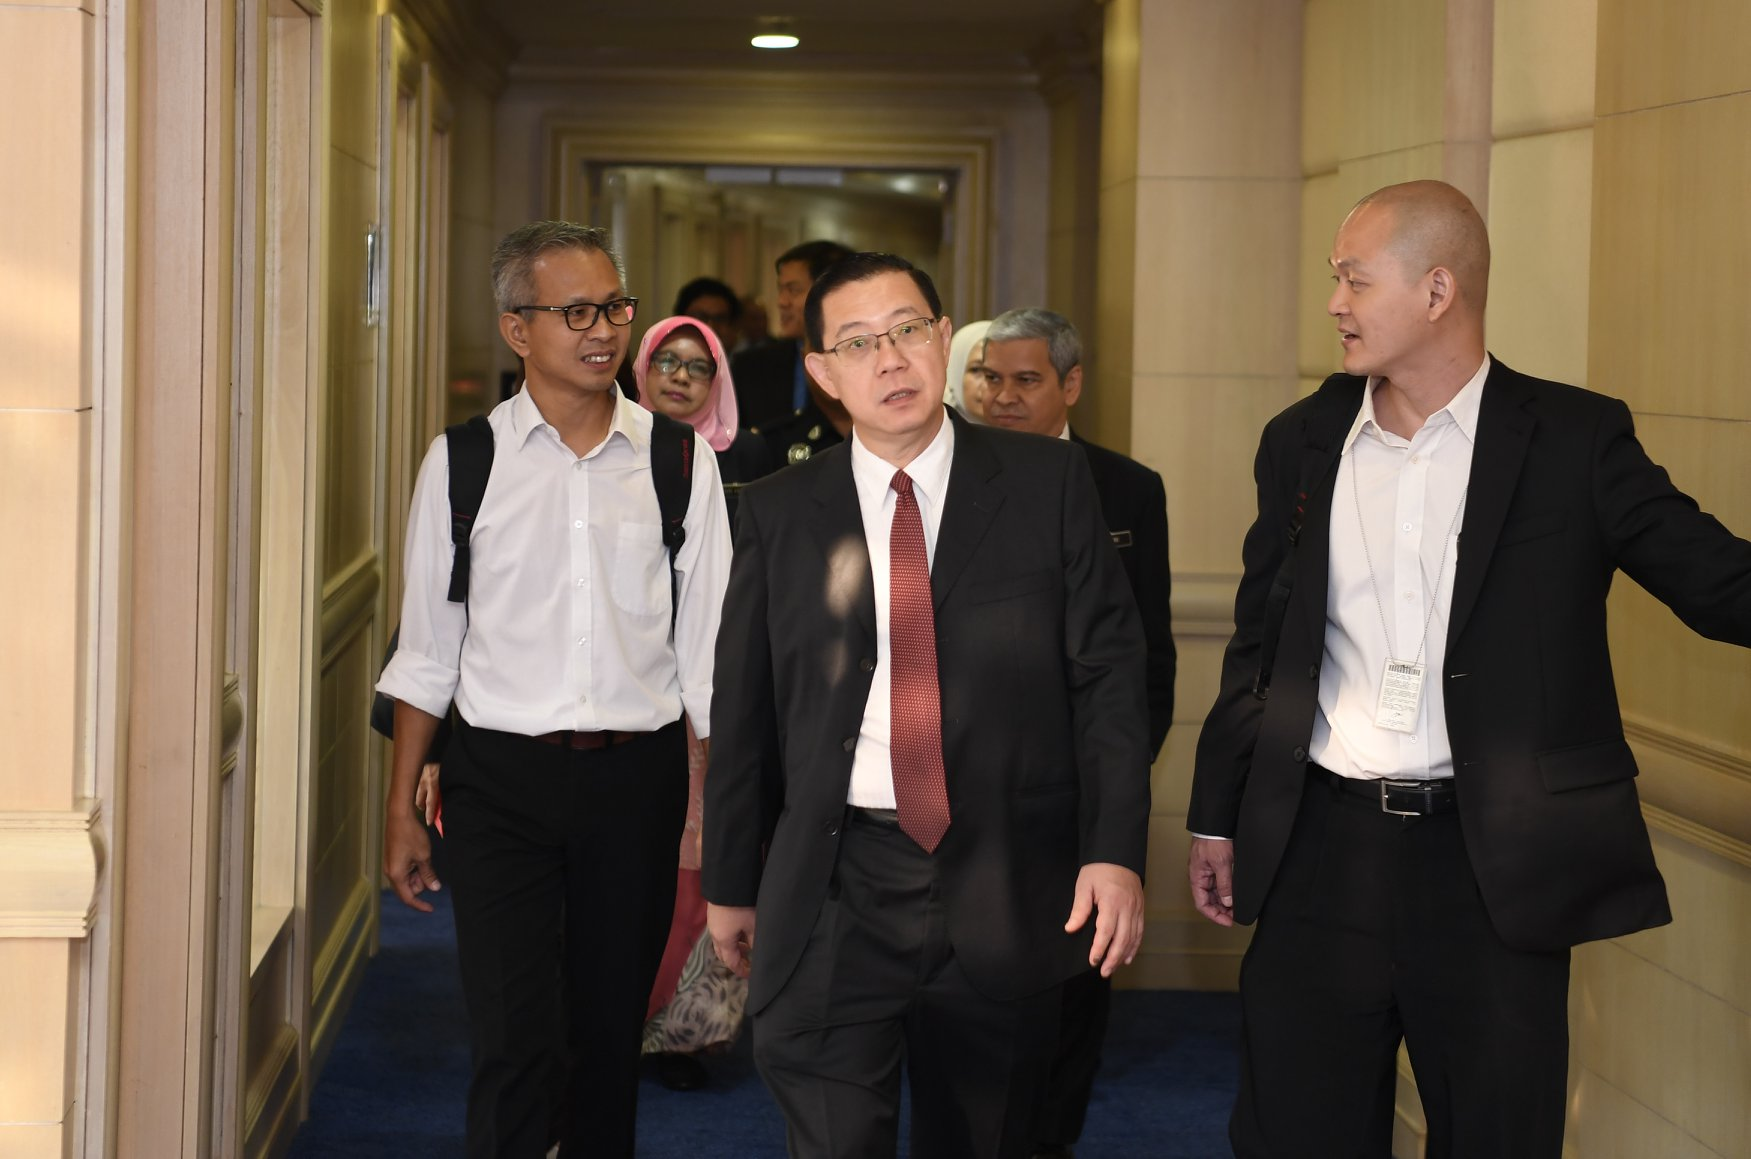 Tony Pua (left), Lim Guan Eng (middle), and Ong Kian Ming (right) at the Ministry of Finance on Tuesday, 22 May.